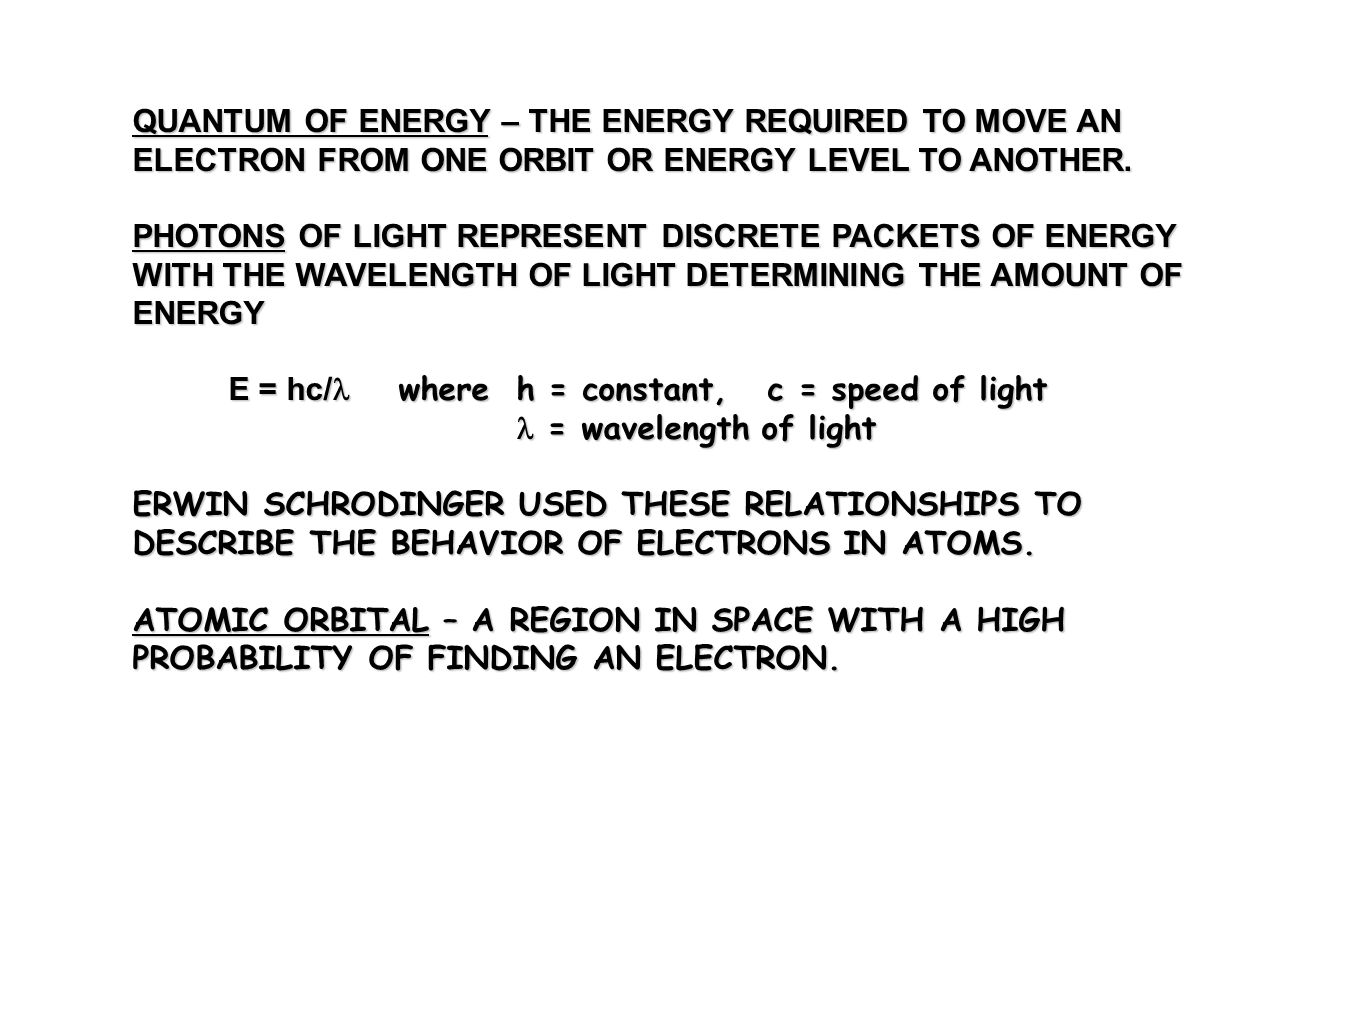 QUANTUM OF ENERGY – THE ENERGY REQUIRED TO MOVE AN ELECTRON FROM ONE ORBIT OR ENERGY LEVEL TO ANOTHER.